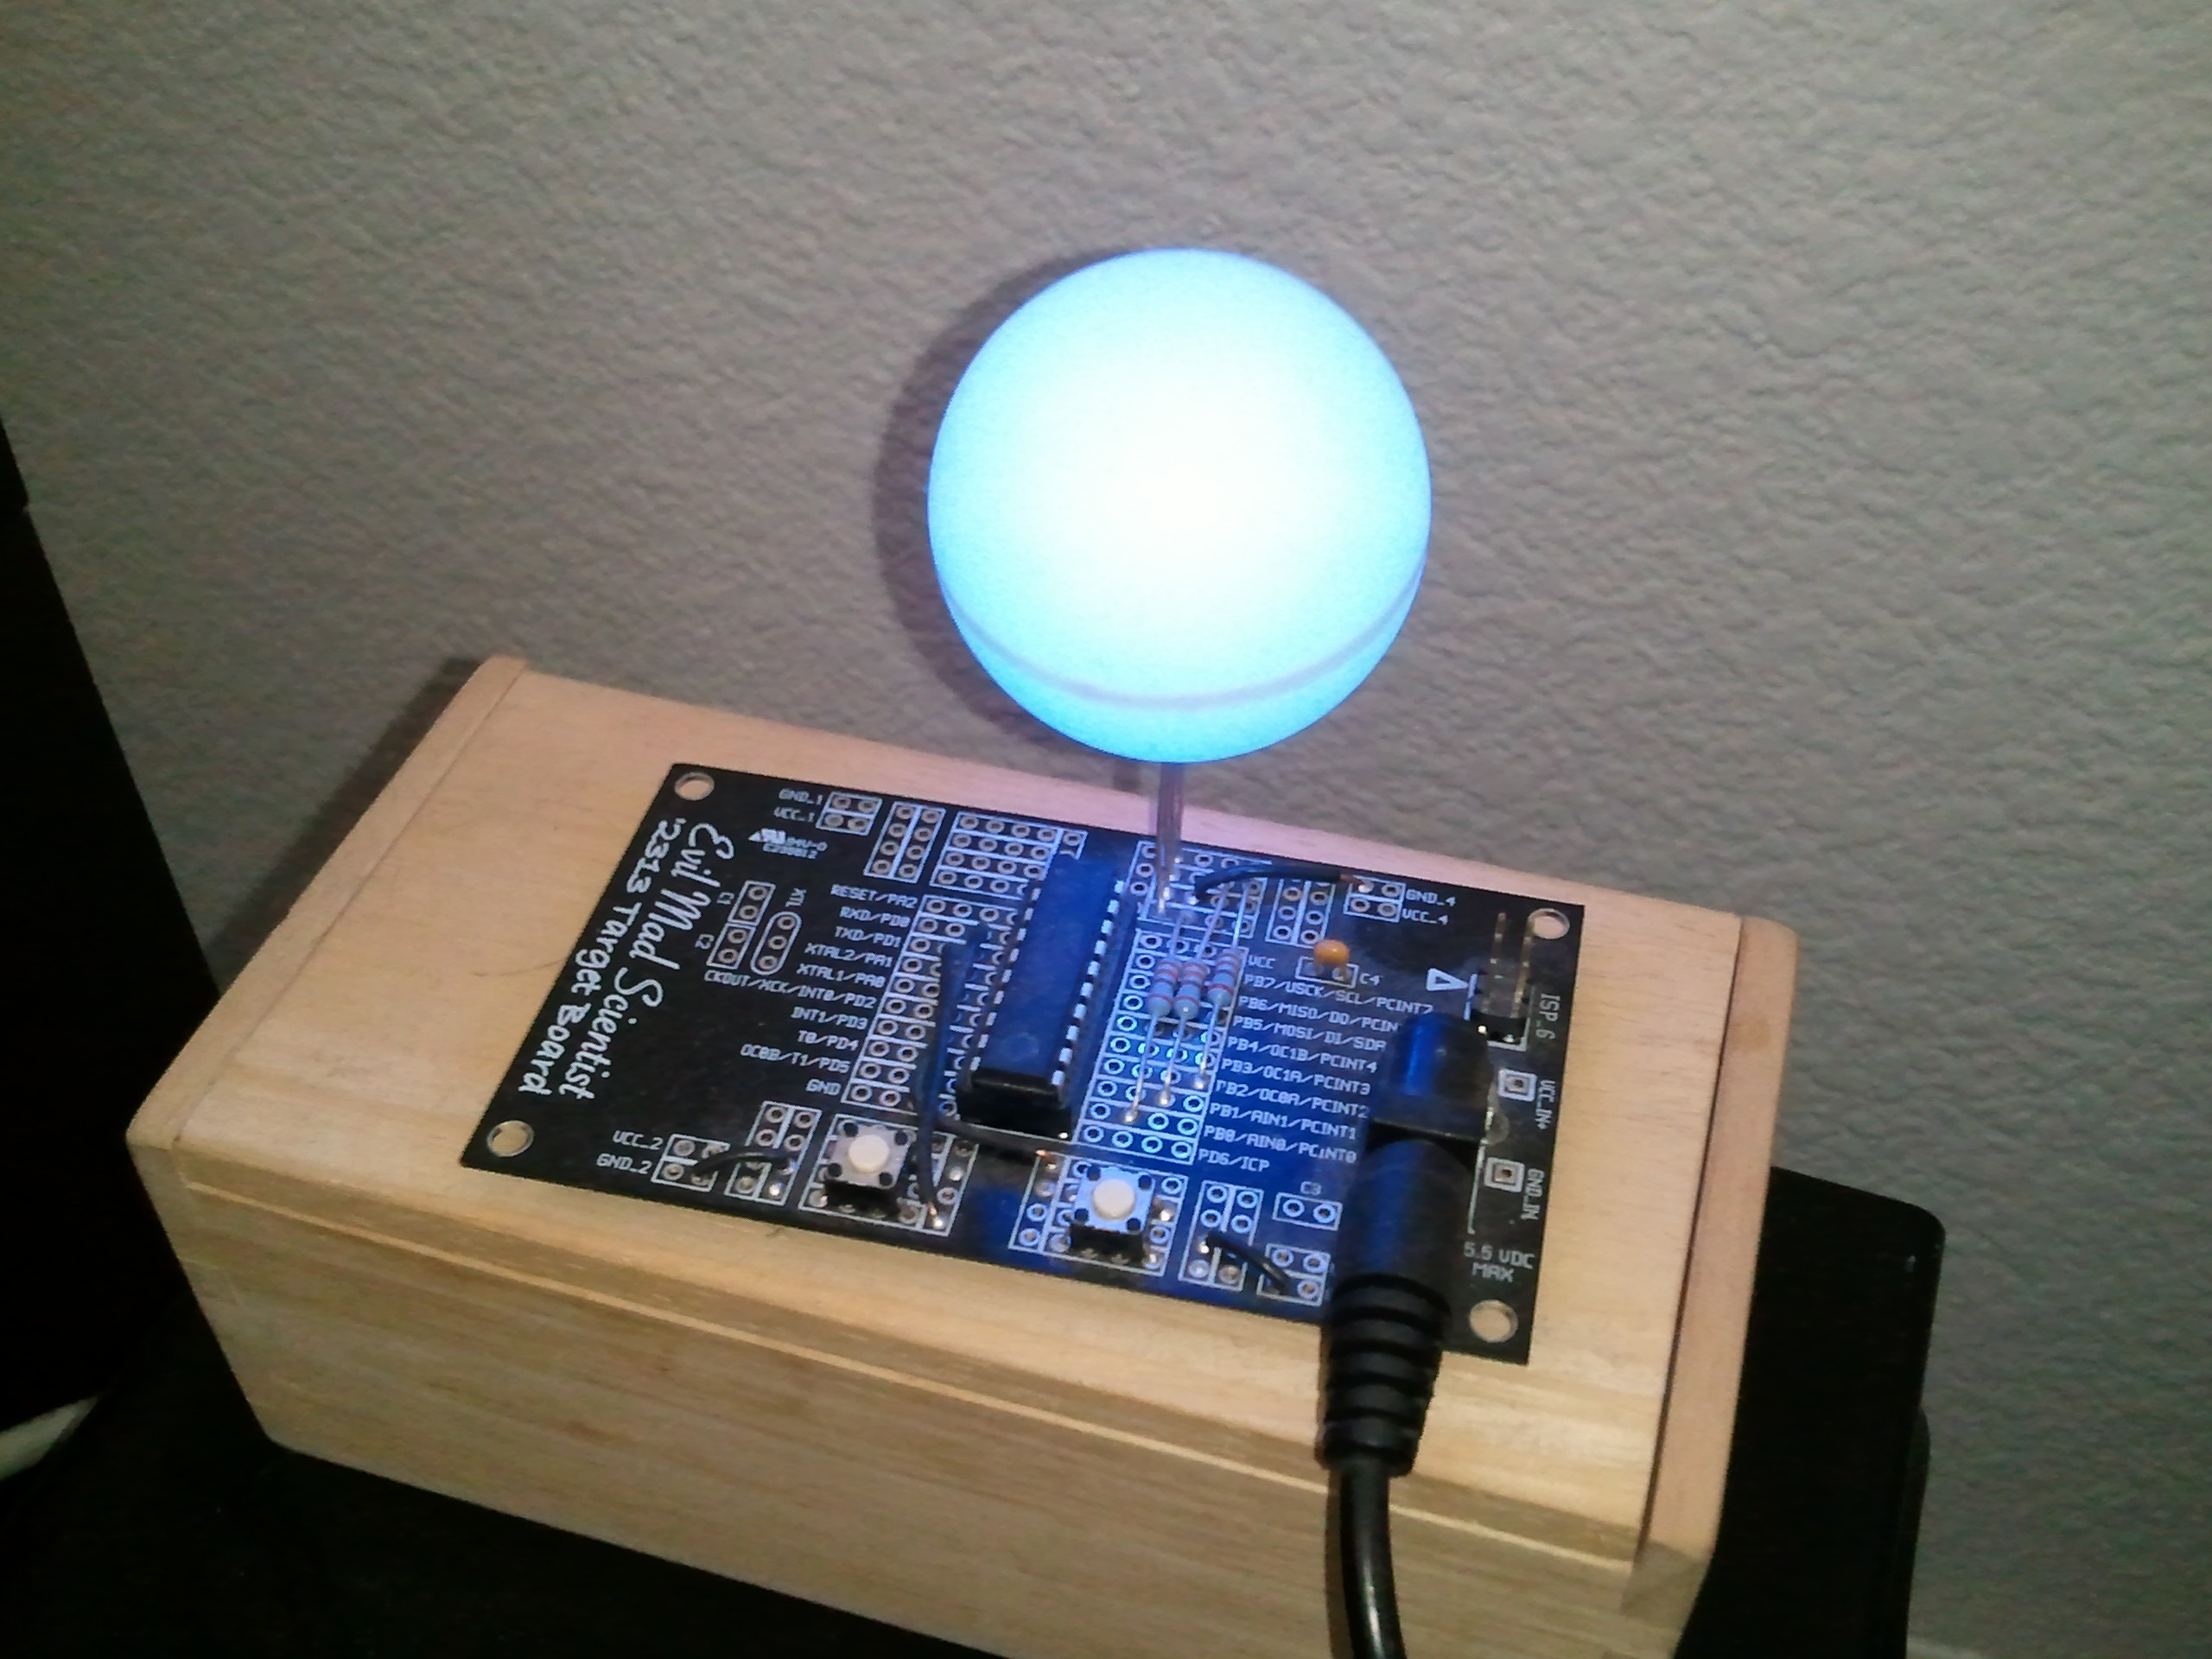 Rgb Led Glow Ball Project Circuits And Projects Electronic Diagram This